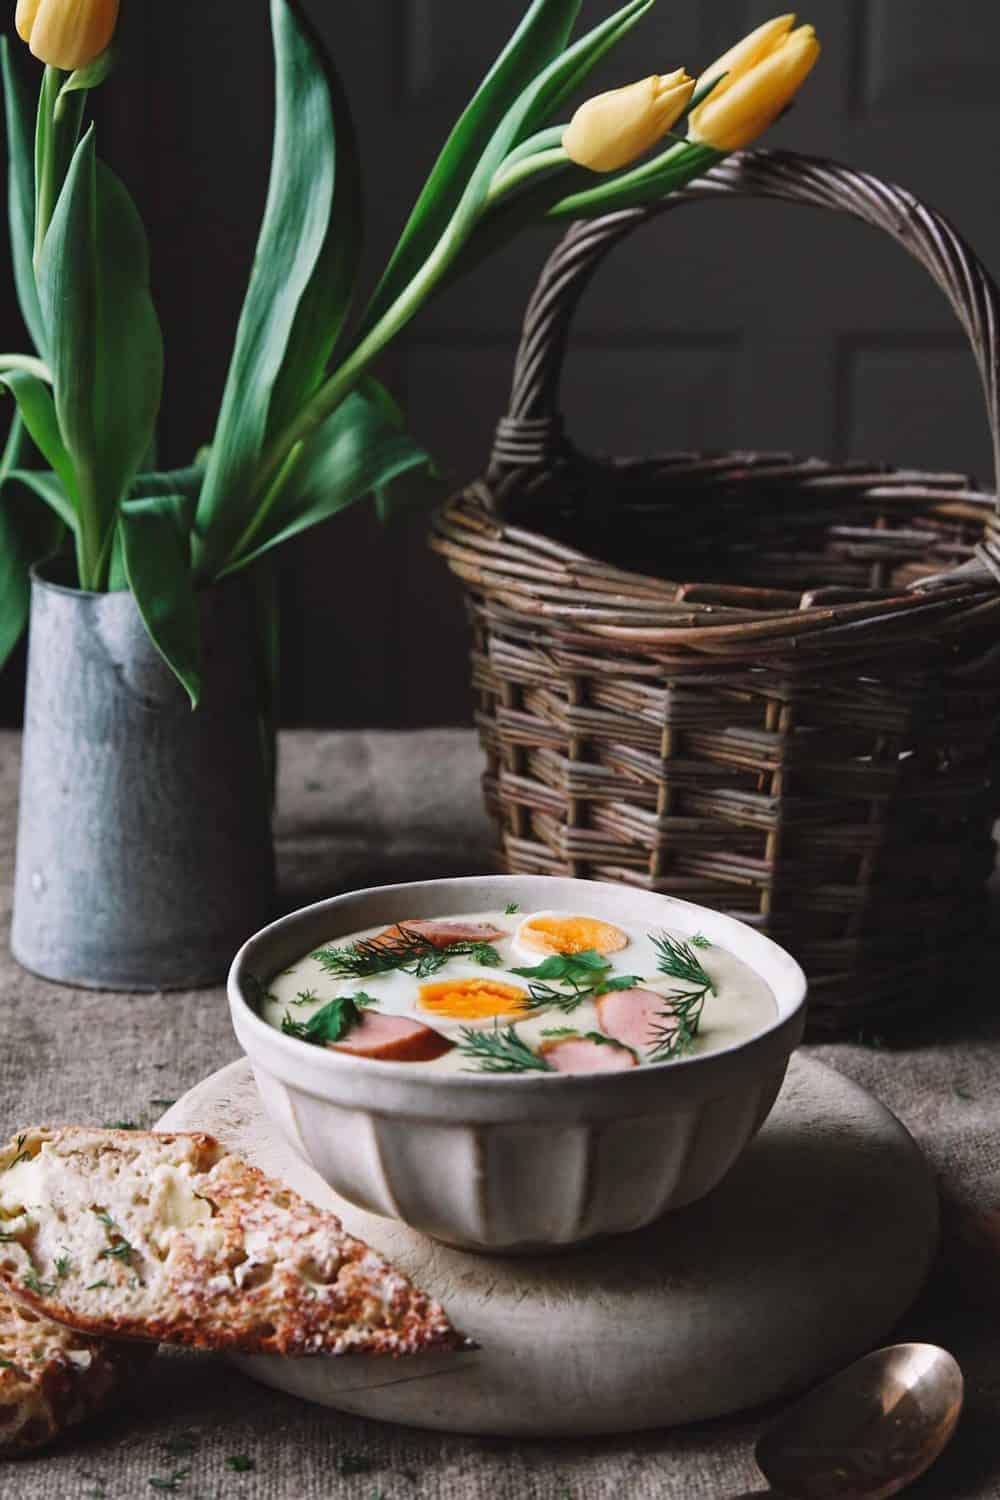 A bowl with Easter breakfast soup traditional to Poland on a table with a basket and tulips in a vase.